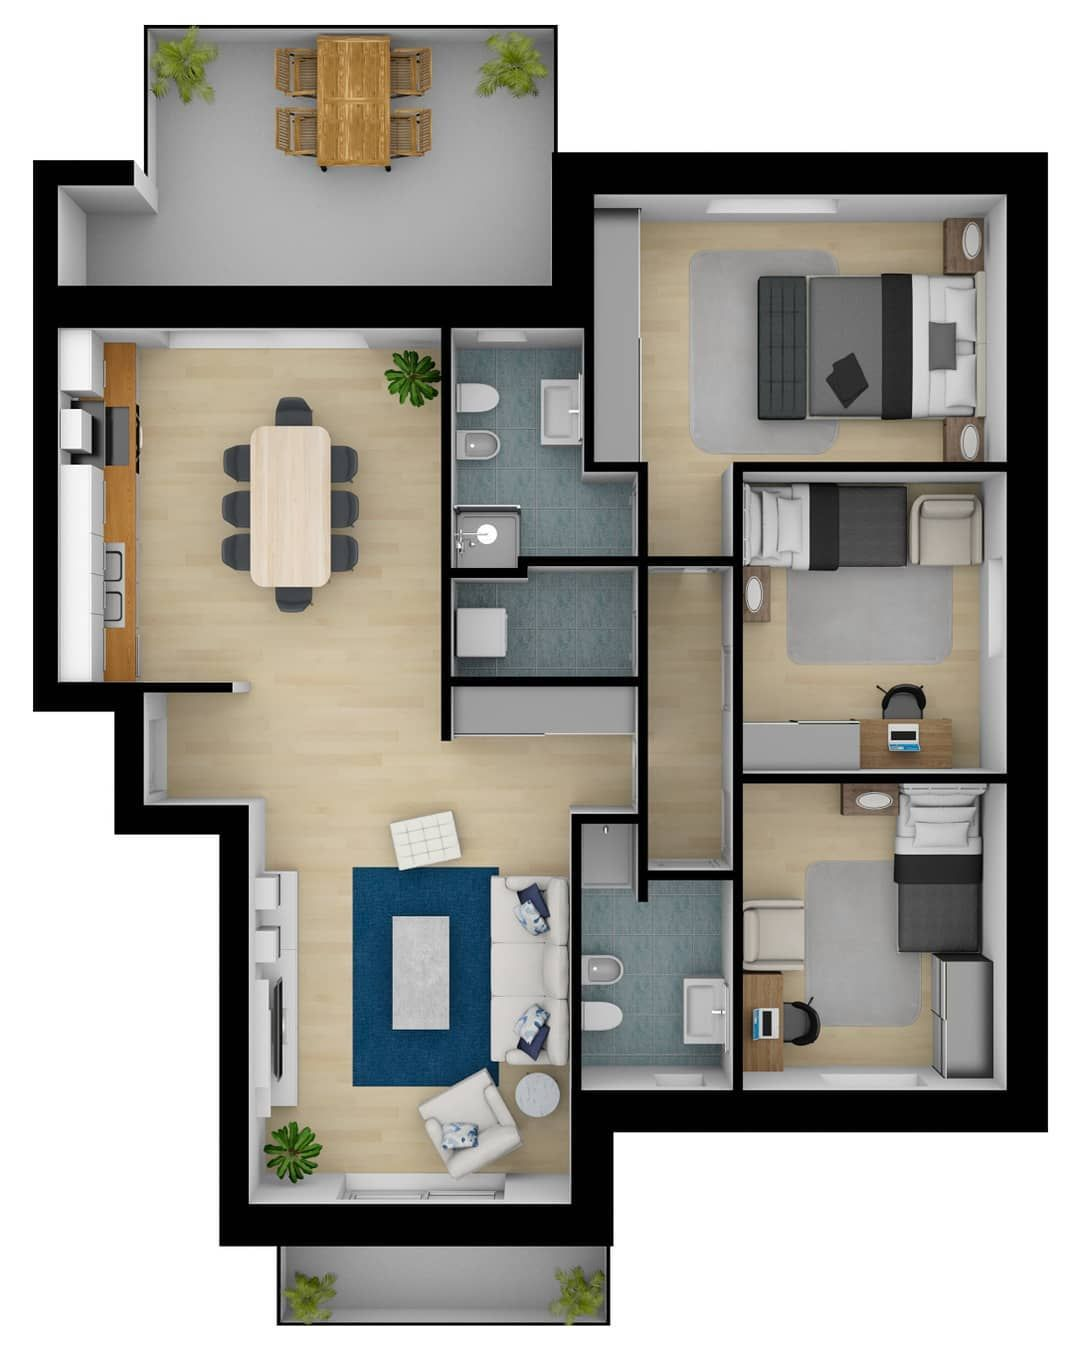 Created by a member of the Floorplanner.com community. #3d ...